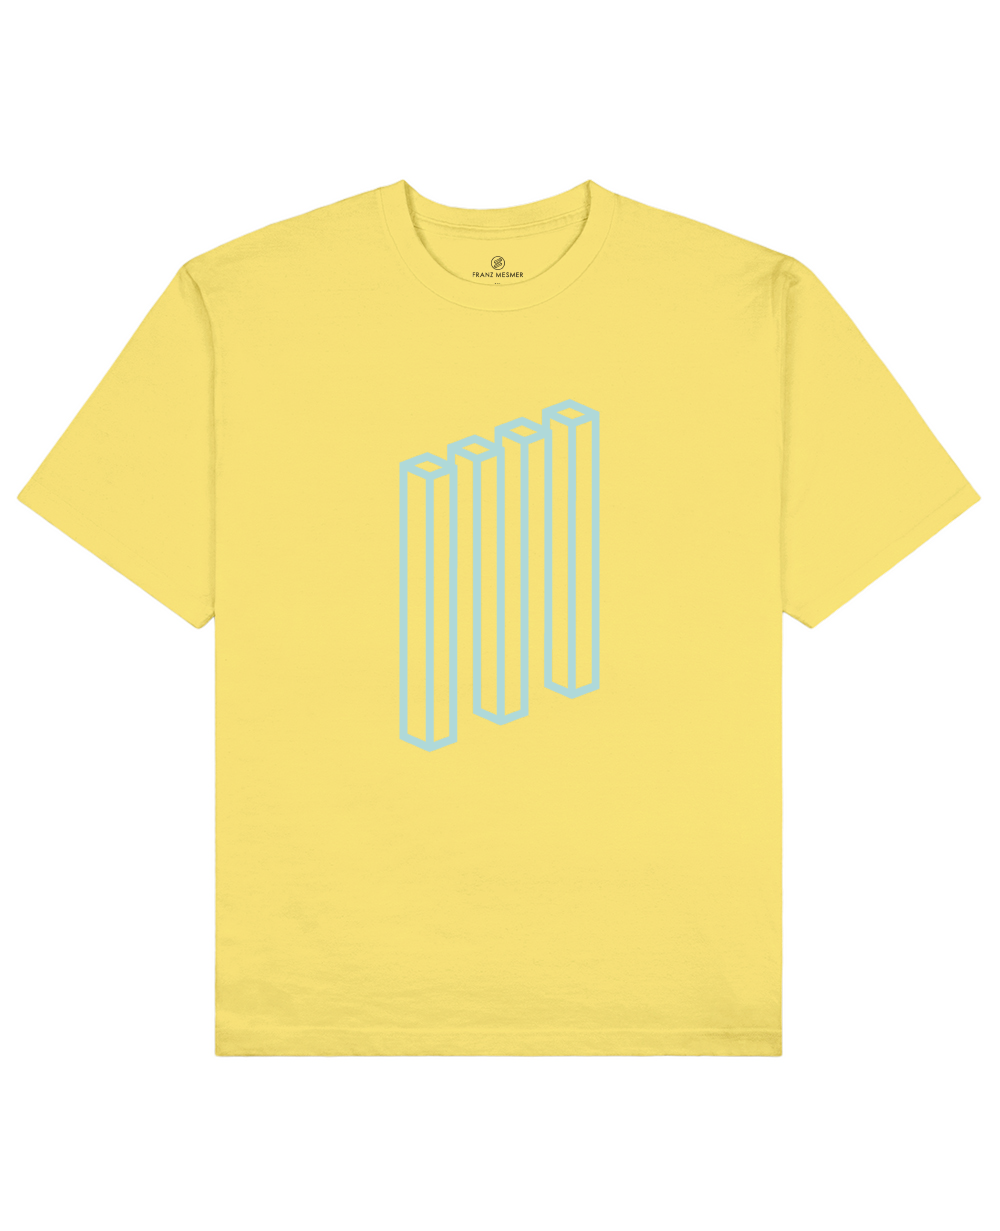 Impossible Rectangle Print T-Shirt in Light Yellow - T-Shirts - Franz Mesmer - BRANMA